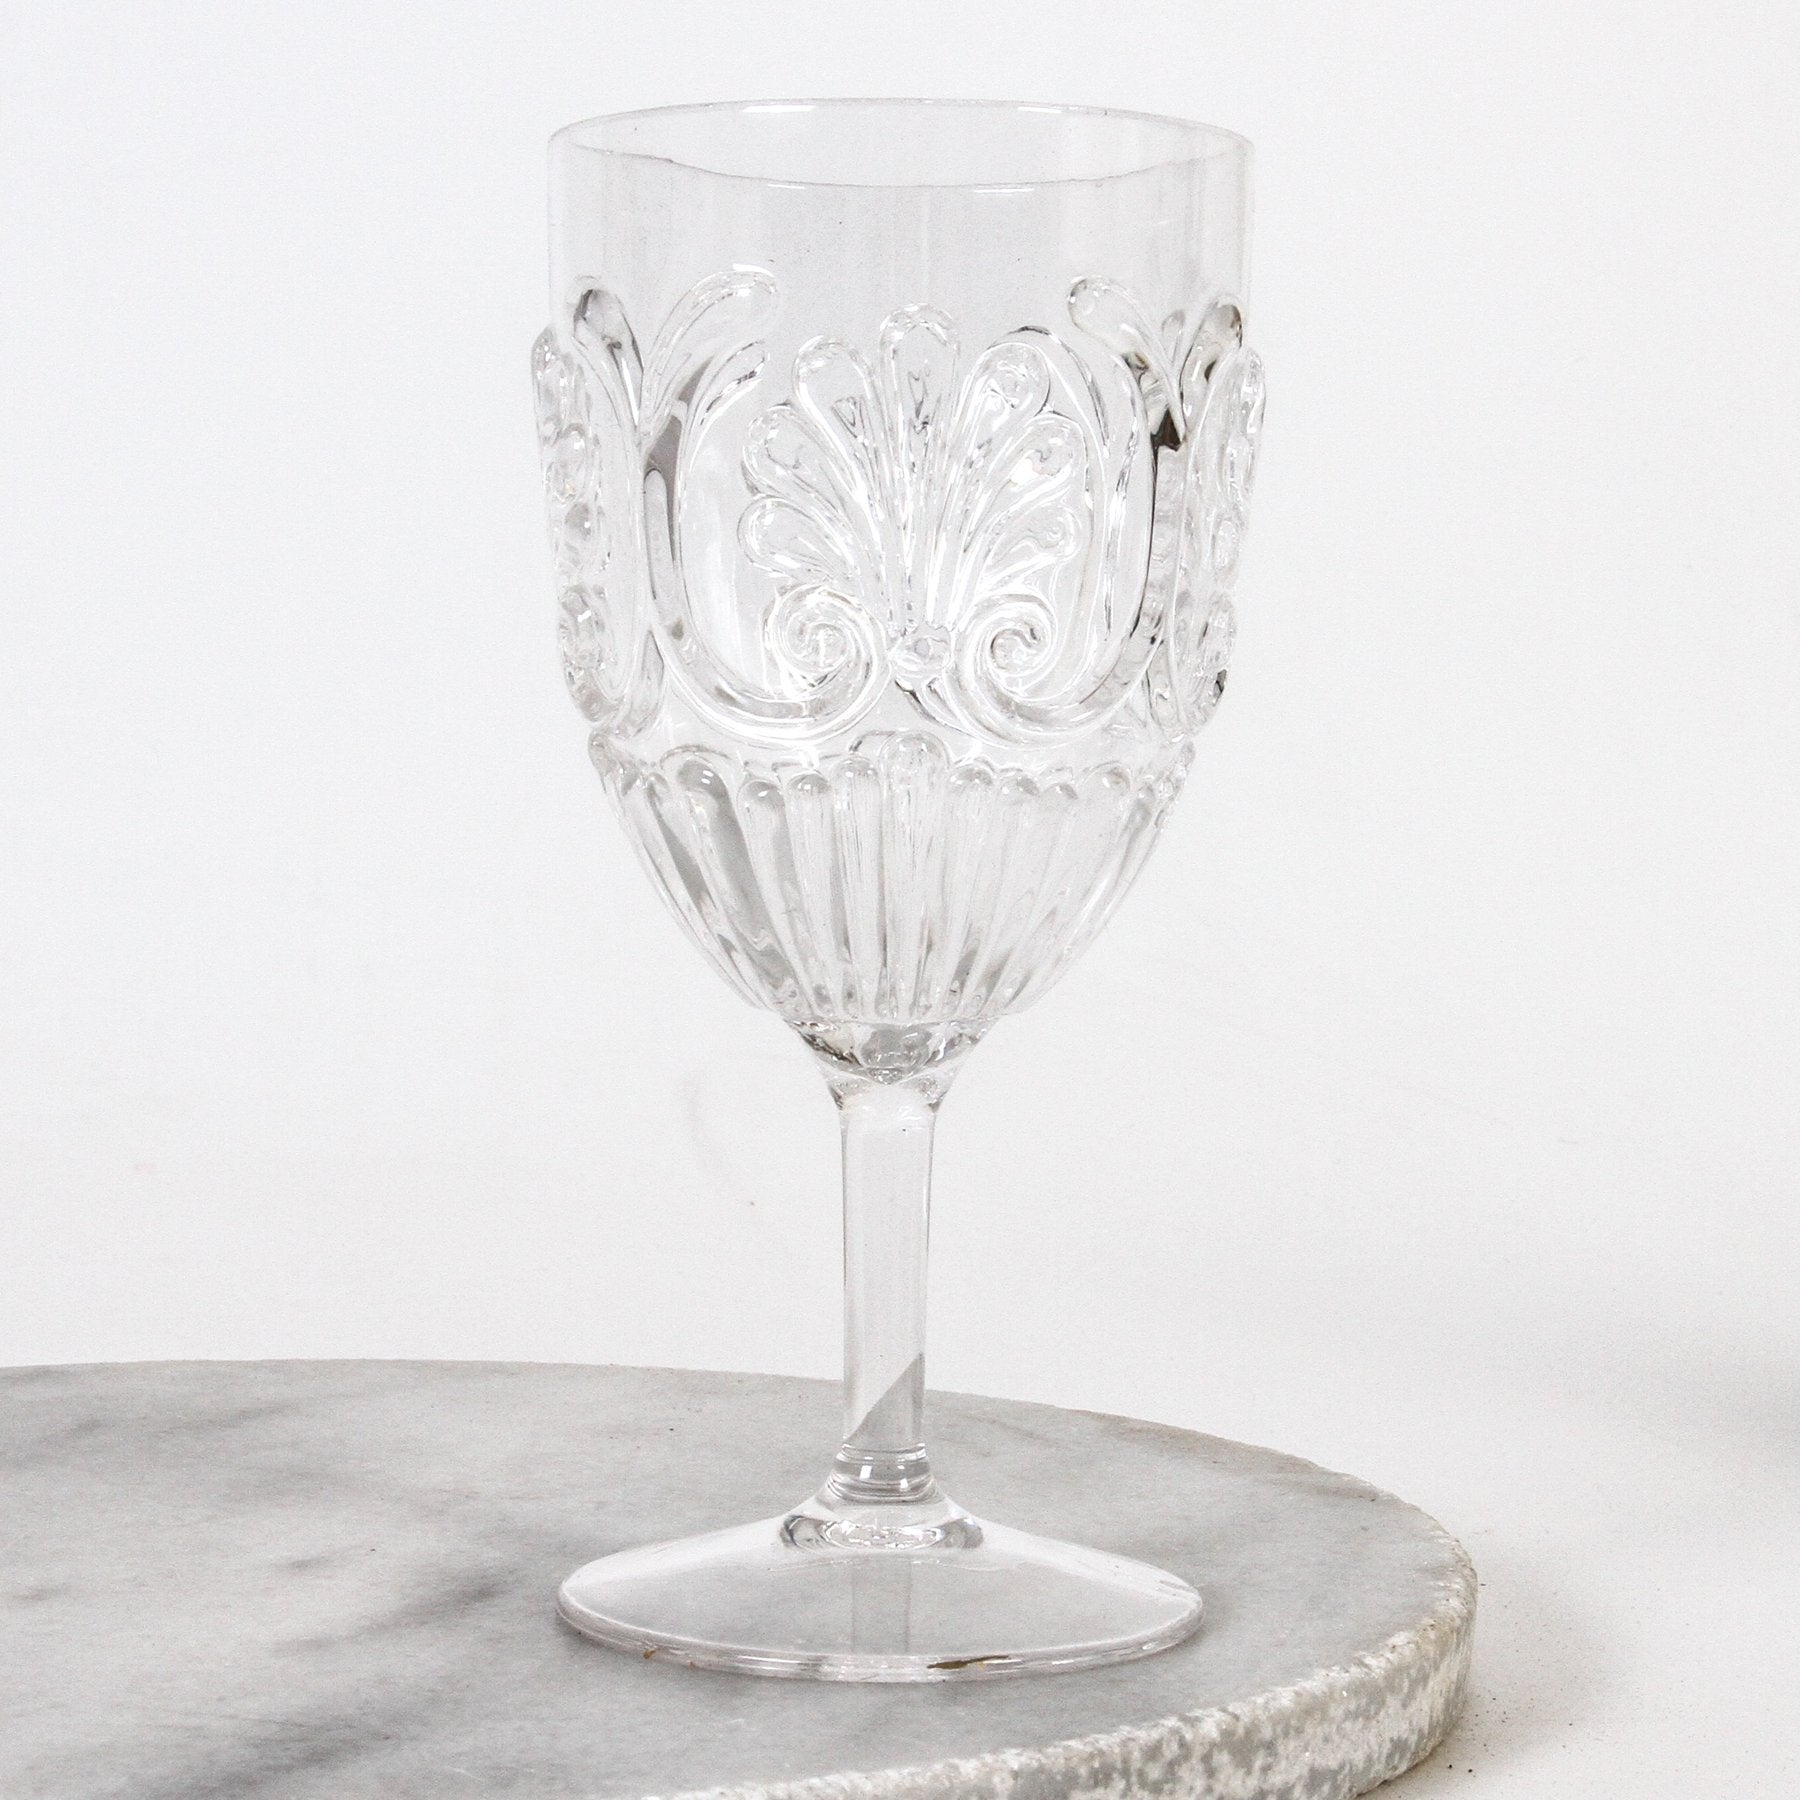 Flemington Acrylic Wine Glass - Clear, Pink, Green, Amber, Blue.